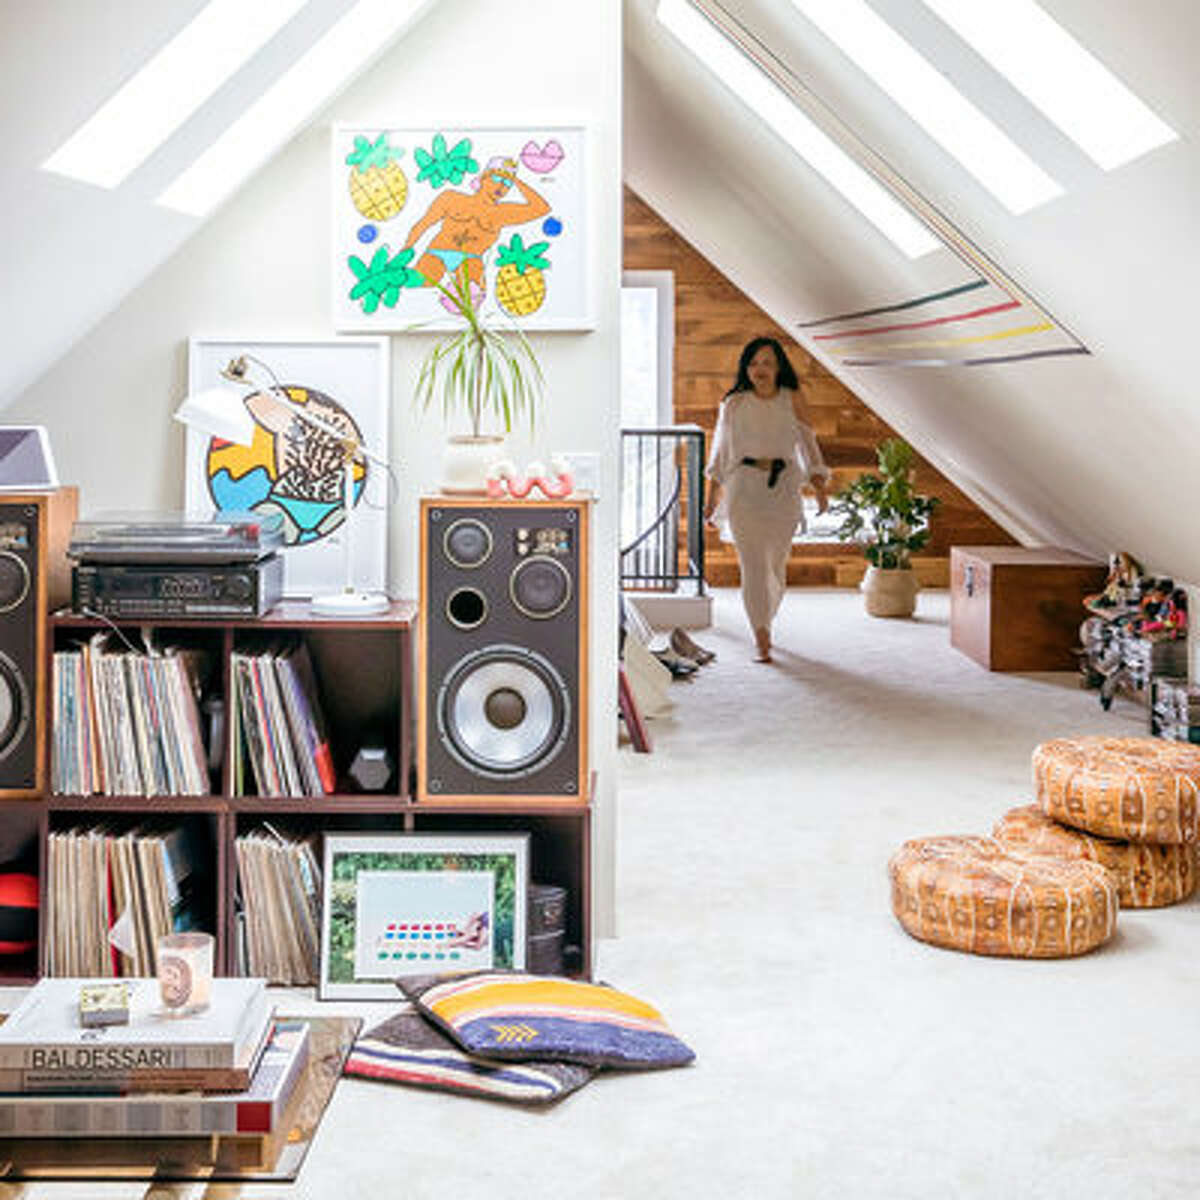 Sneak in storage The couple utilized a half wall in their attic bedroom to make space for their music collection. Records, speakers, and a turntable all fit tidily on modular stacking wood boxes.